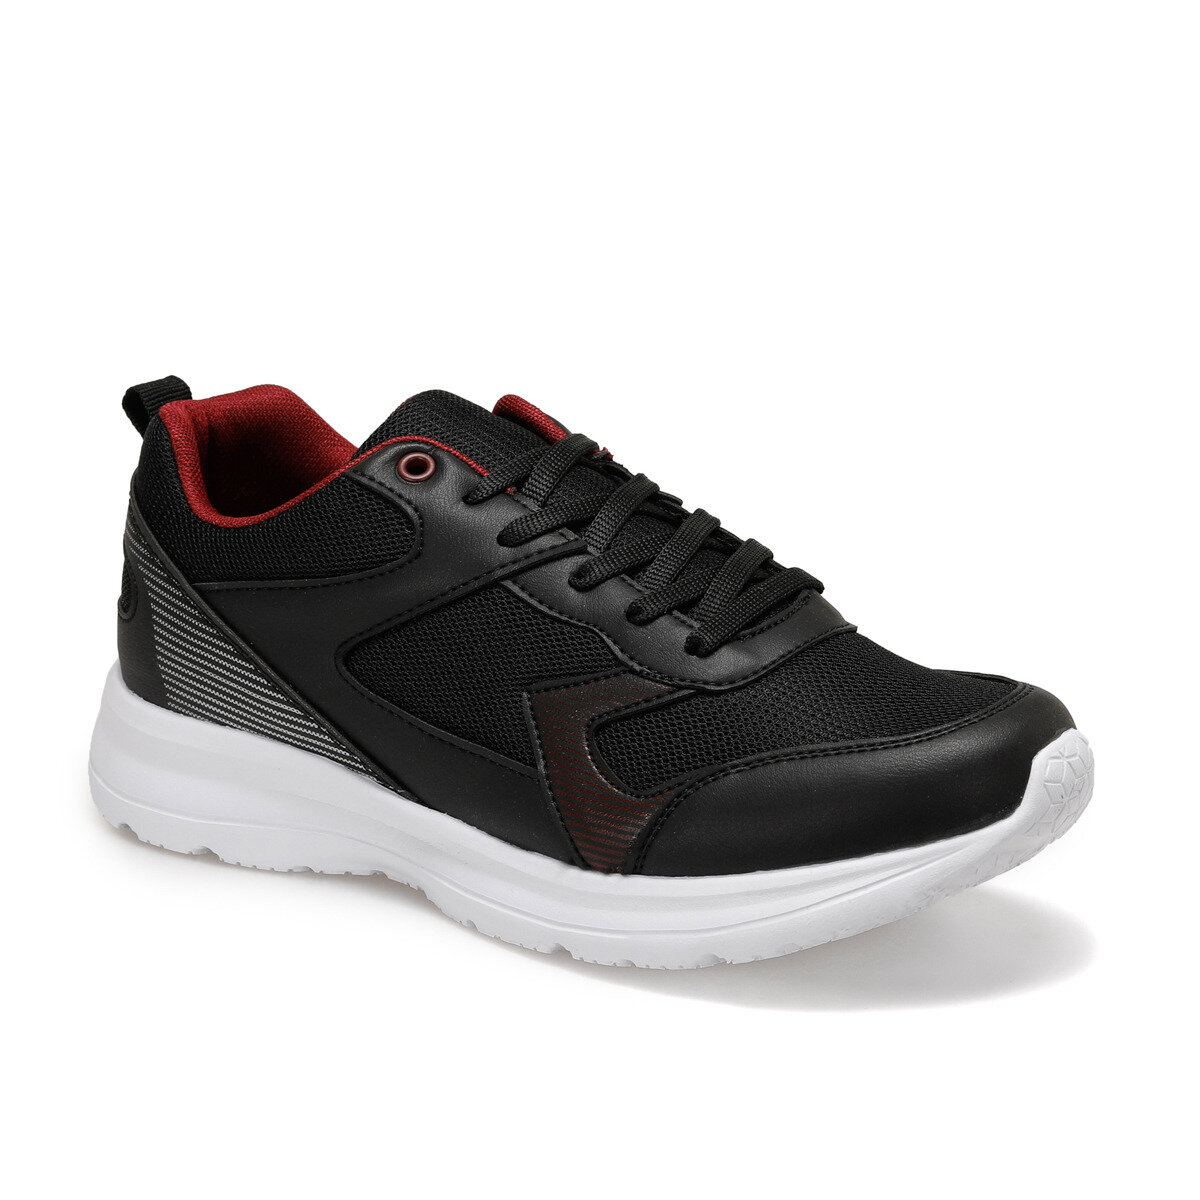 FLO MAGIC Black Male Sports Shoes Torex